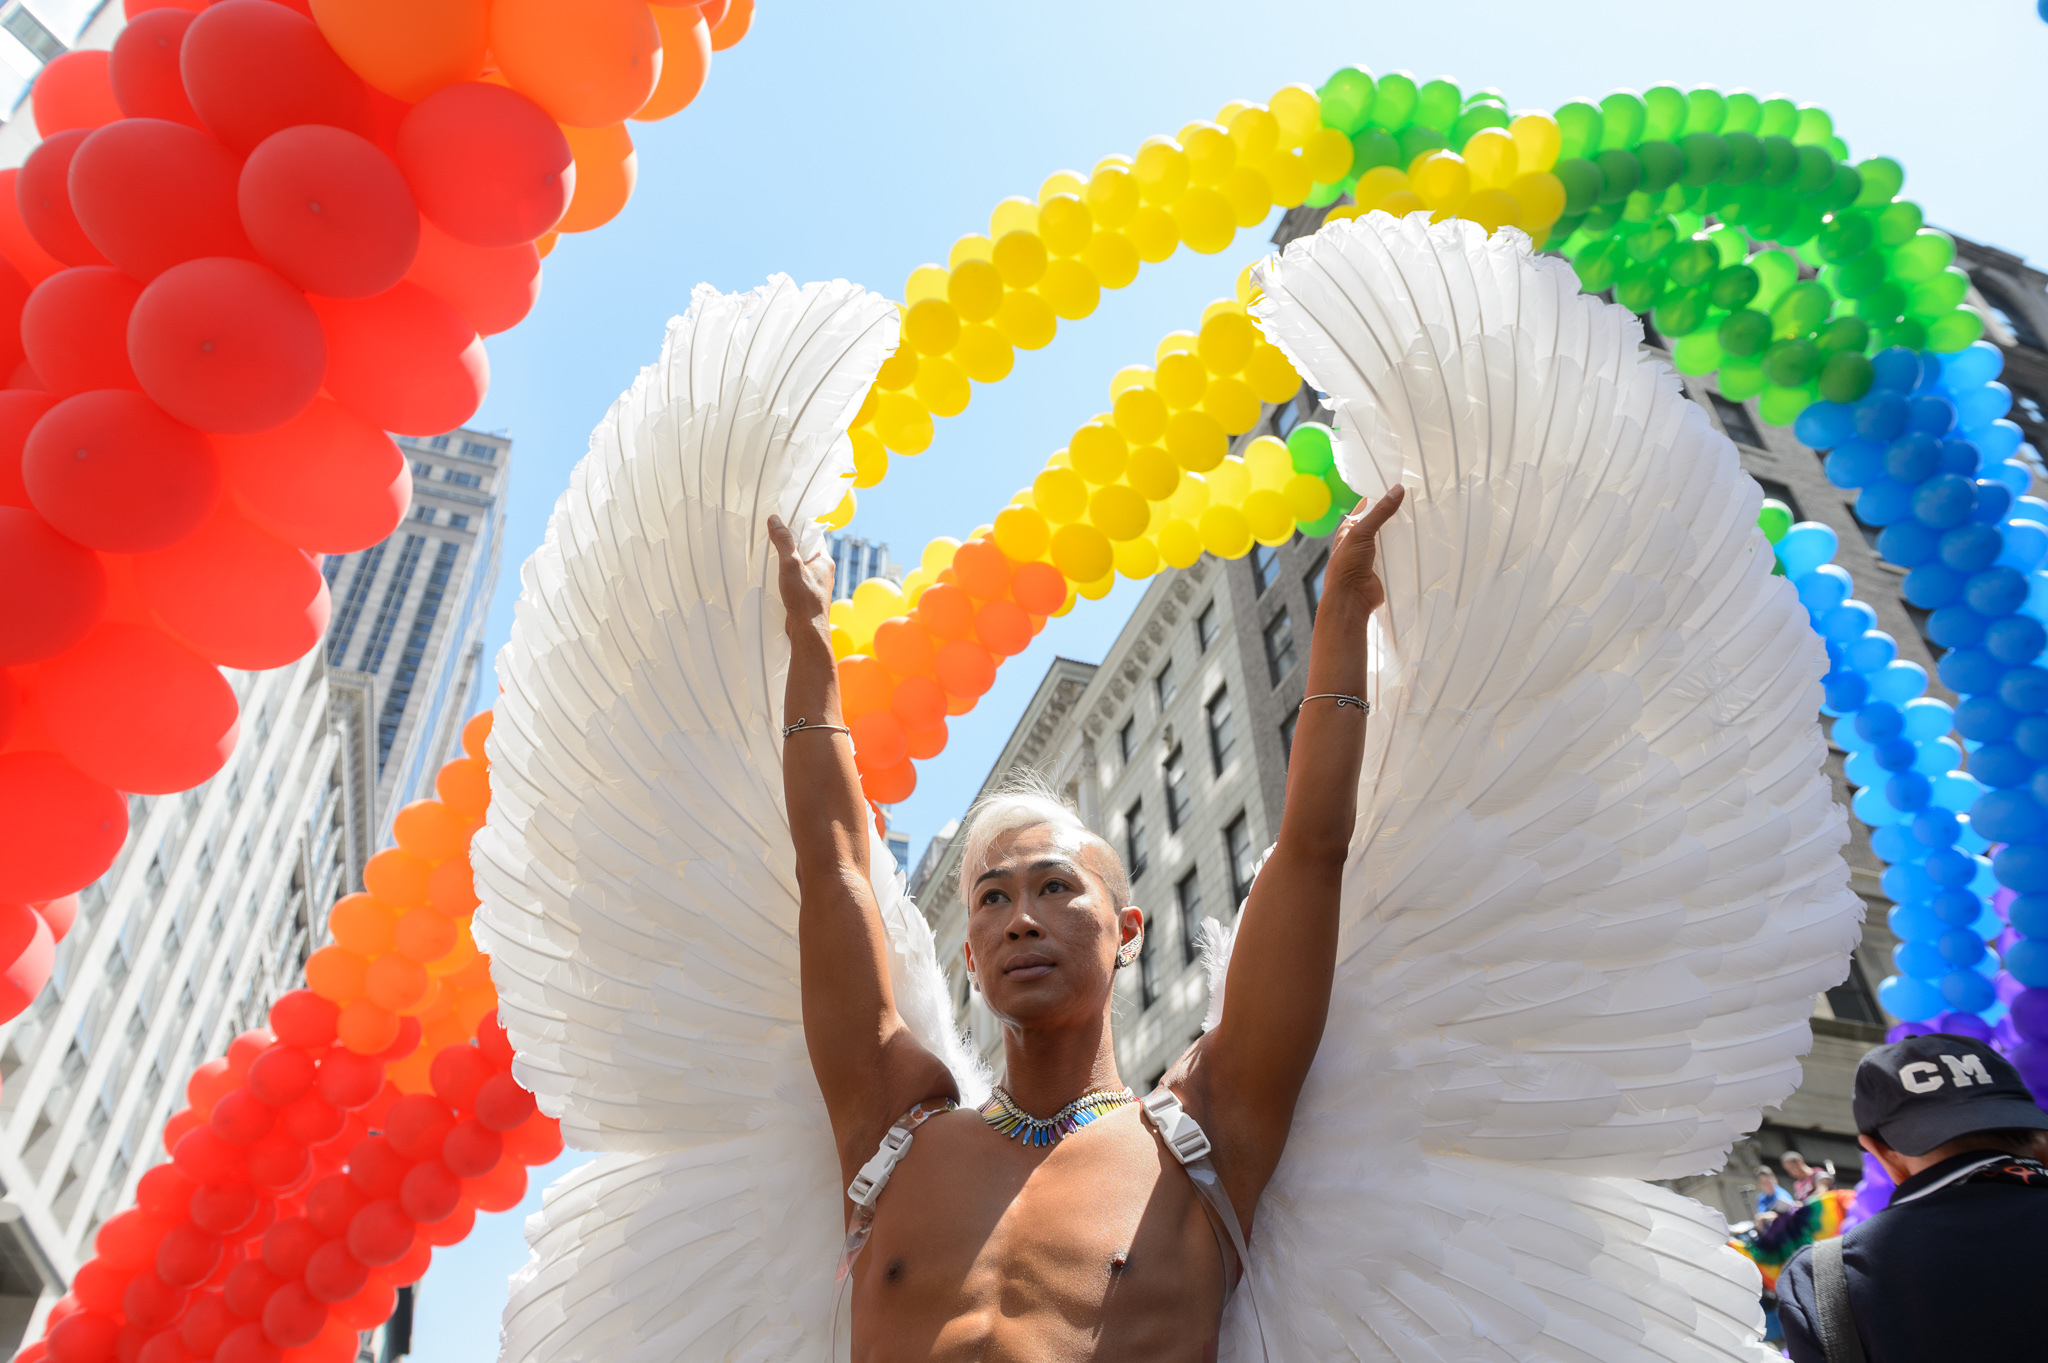 Photos of the 2014 NYC Pride March